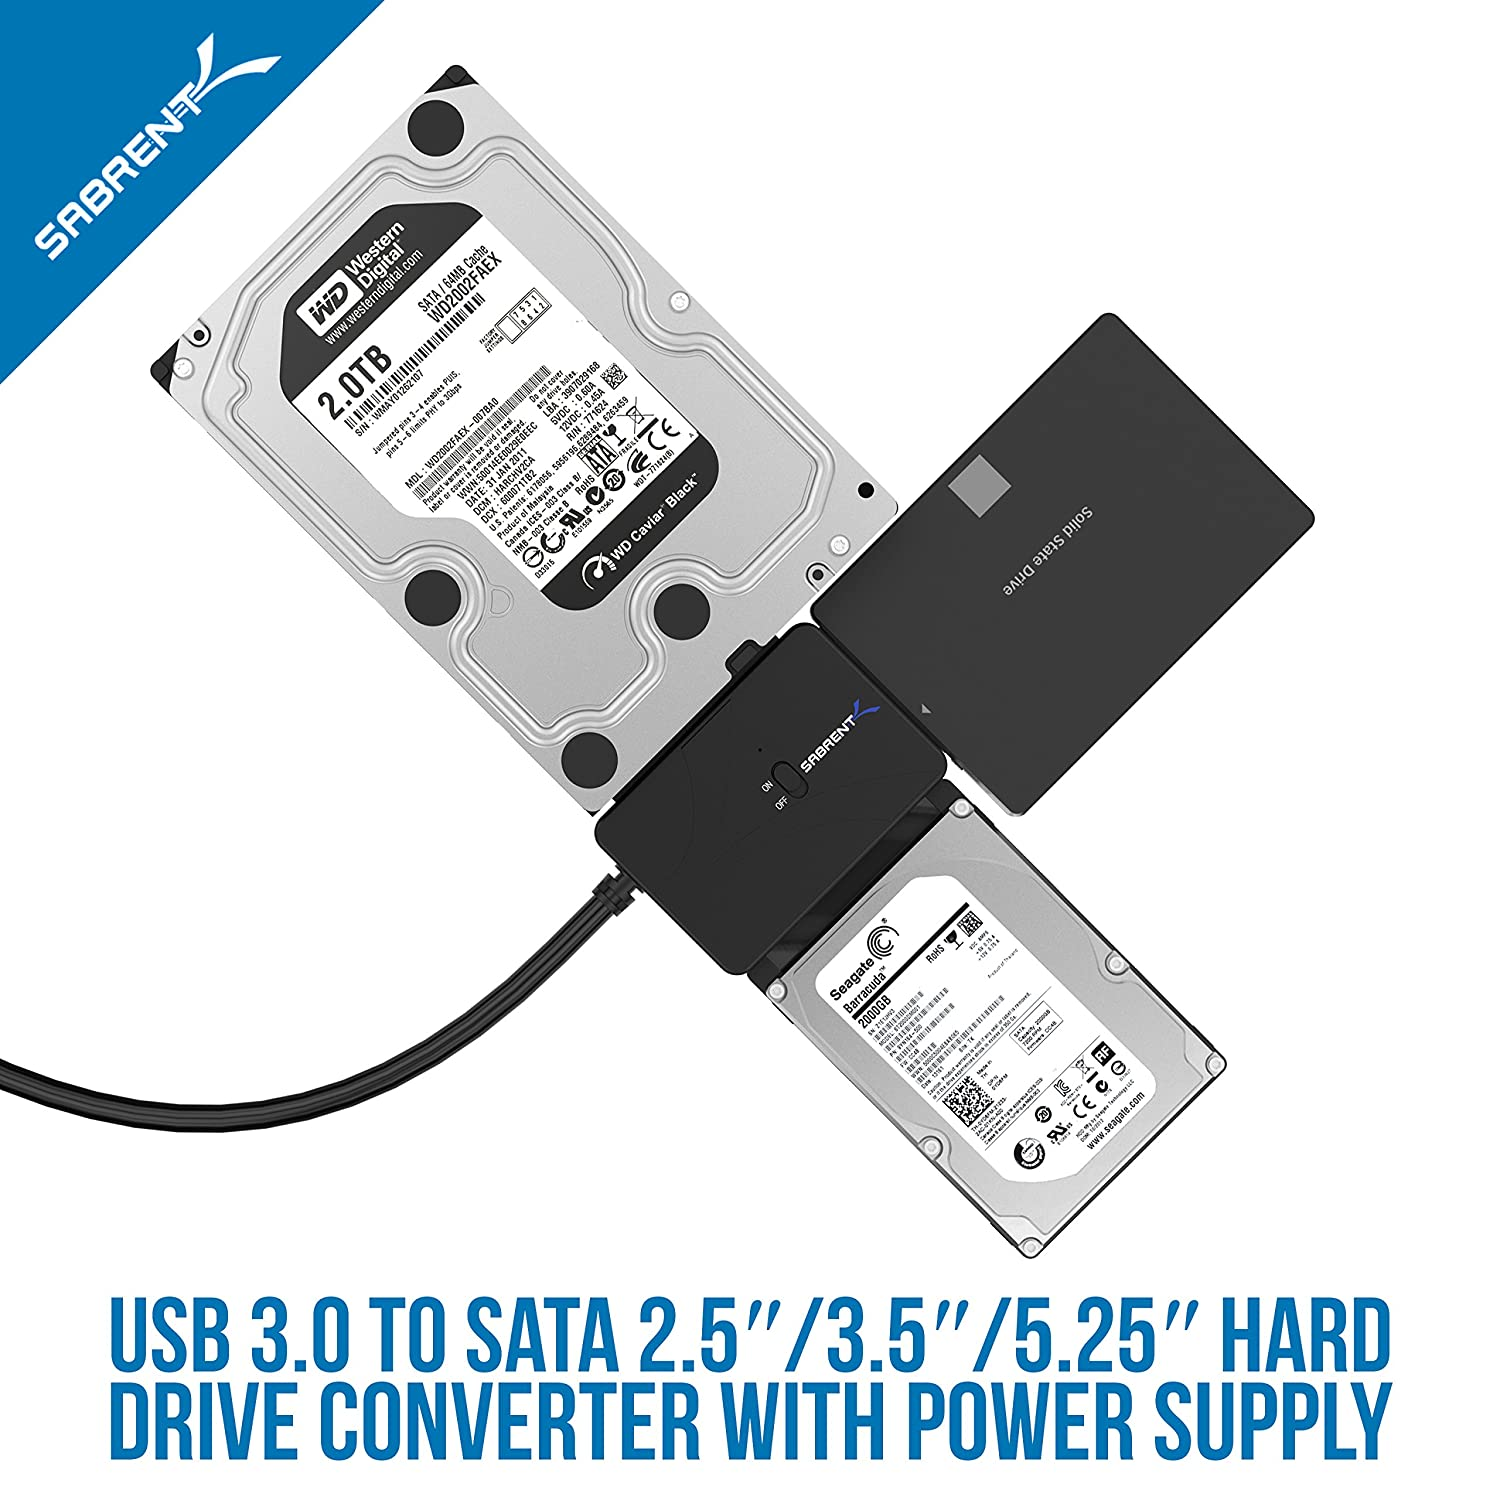 USB-DS12 Sabrent USB 3.0 TO SSD//SATA 10TB Support IDE 2.5//3.5//5.25-INCH Hard Drive Converter With UL Power Supply /& LED Activity Lights